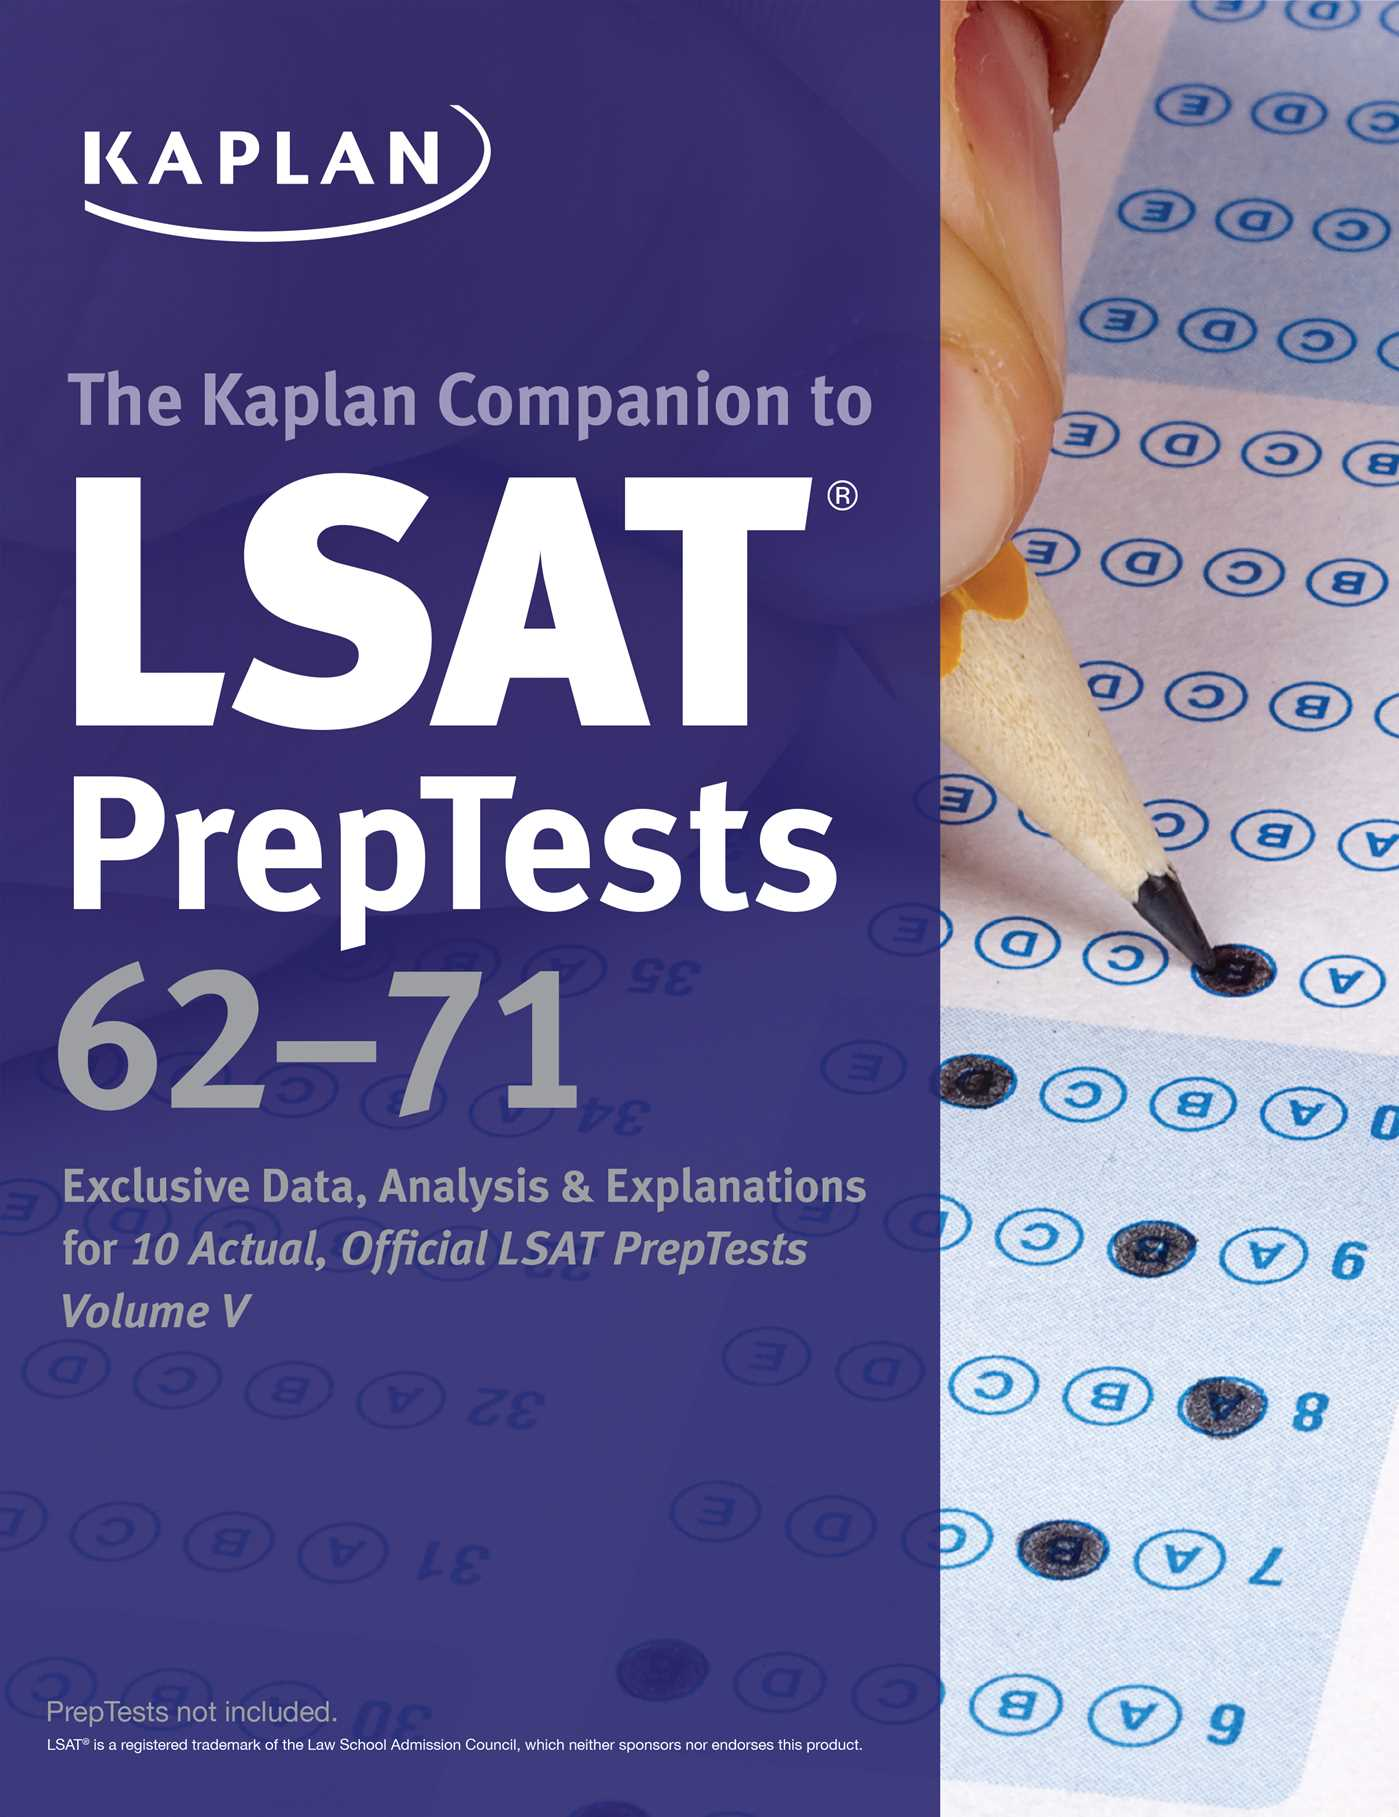 Lsat prep deals 19 greens kelowna coupon schwartz who writes the lsat blog lsatblogspot and tutors in new york city said students are increasingly interested in money saving options malvernweather Choice Image